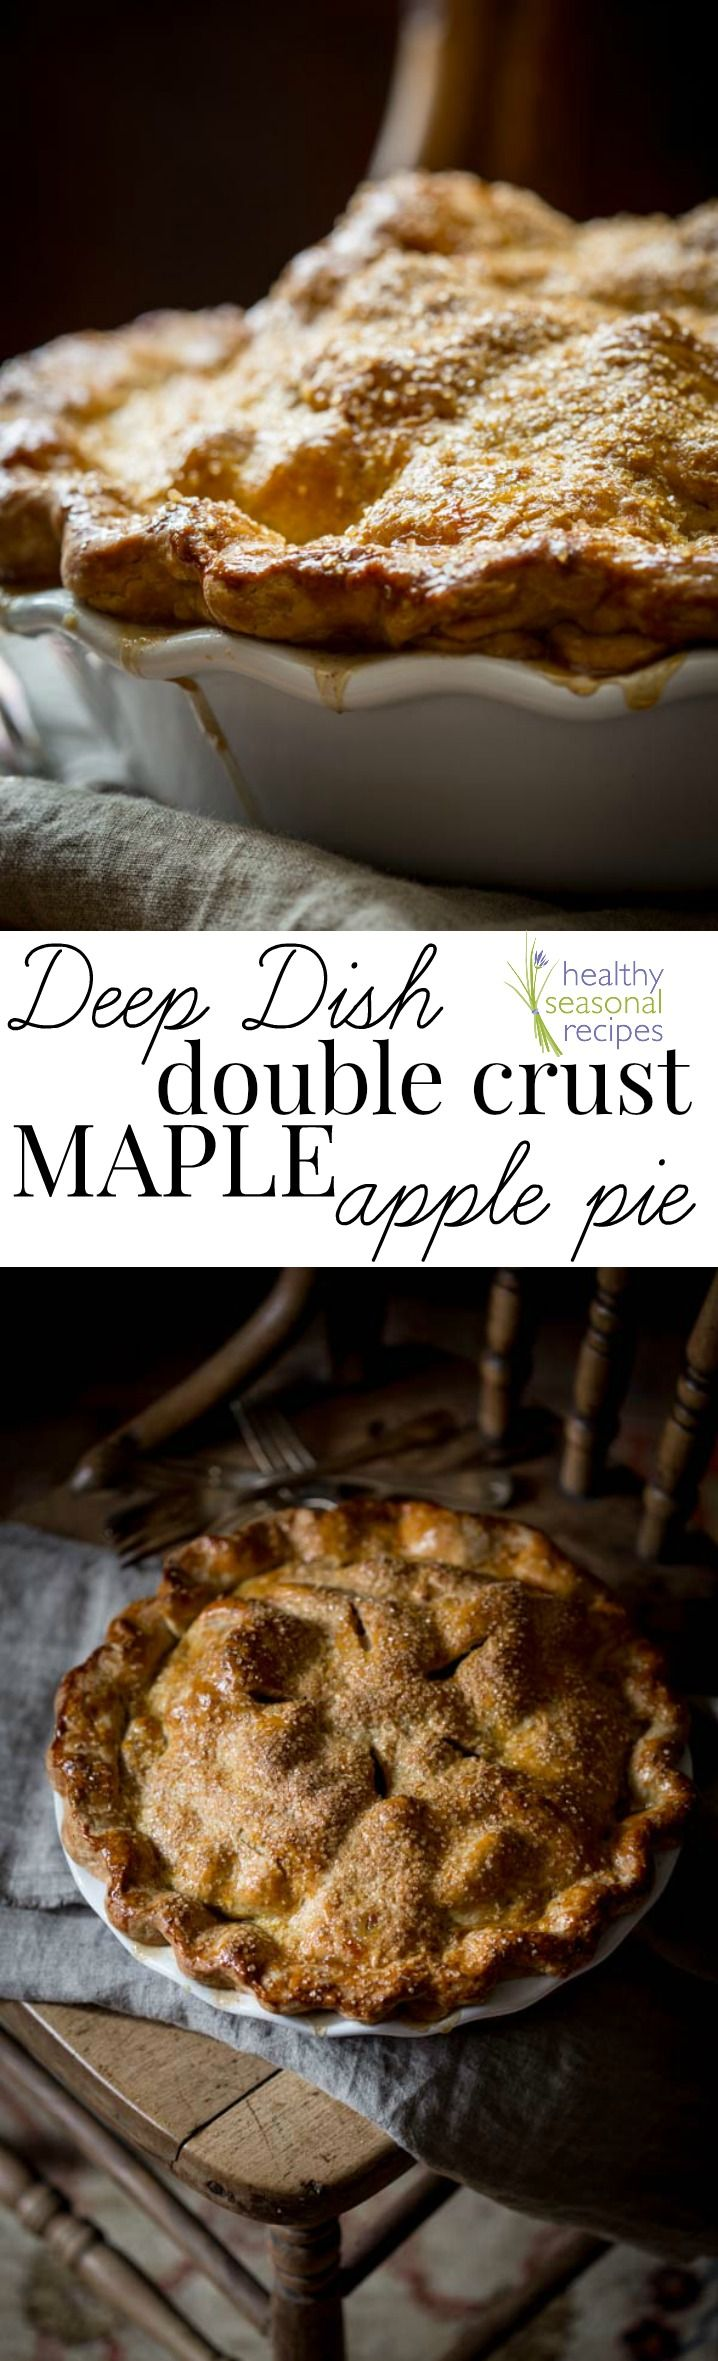 Blog post at Healthy Seasonal Recipes : This deep dish, double crust maple apple pie is a classic fall dessert that is hard to beat. If you love apple pie, and you plan to make one[..]